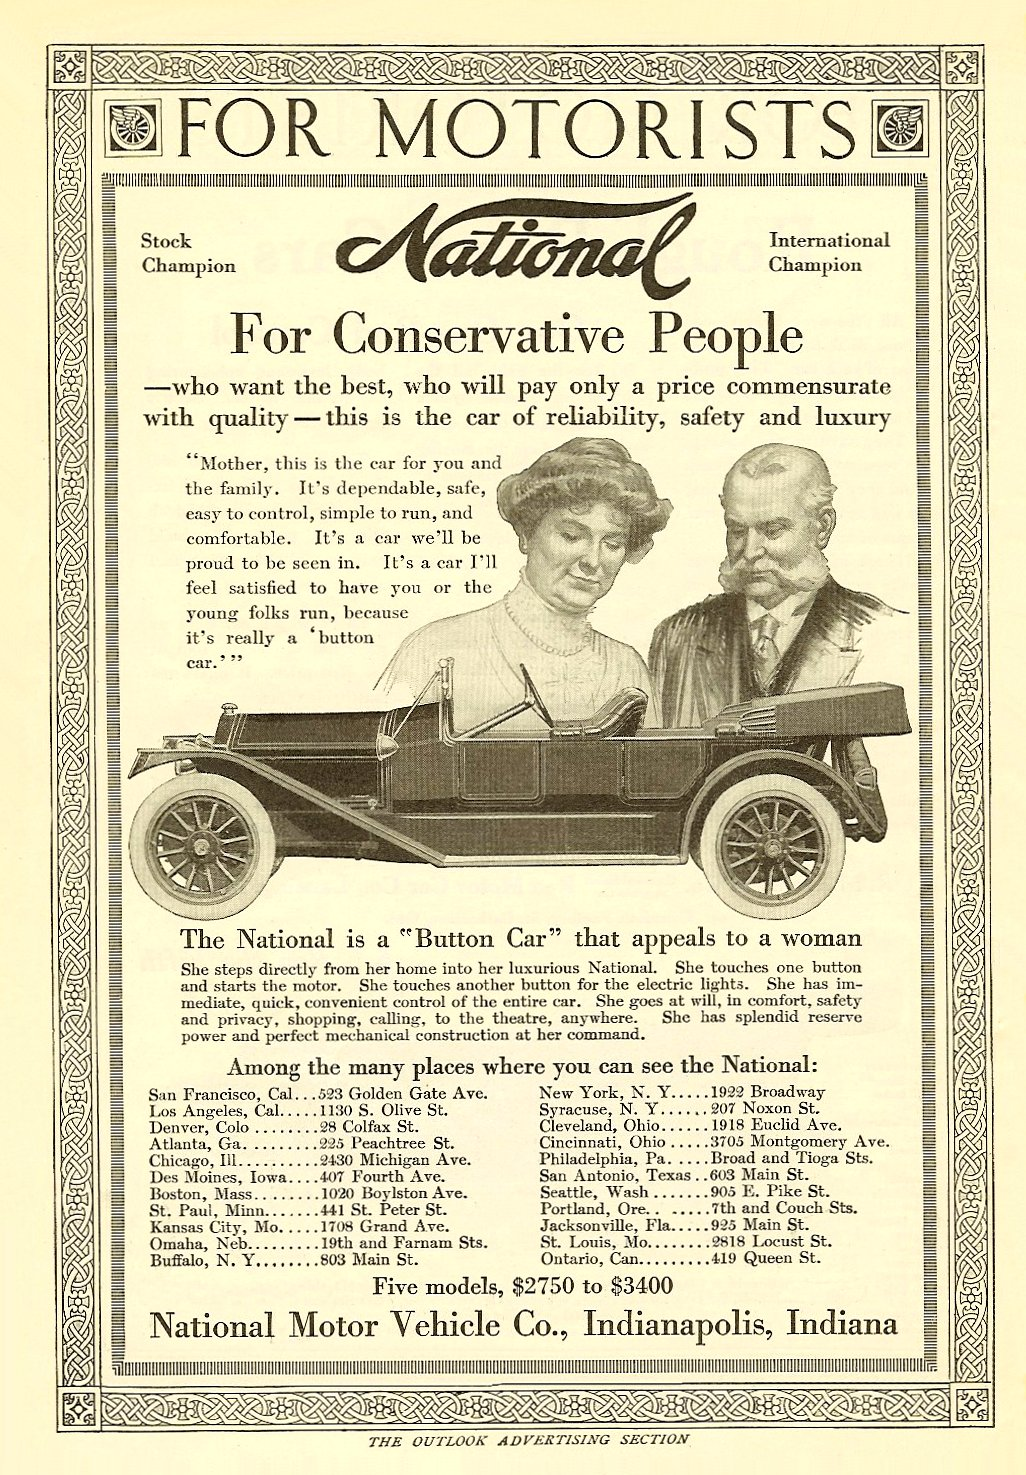 """1913 3 22 NATIONAL """"For Conservative People"""" The Outlook Advertising Section March 22, 1913 6.75″x9.75″"""